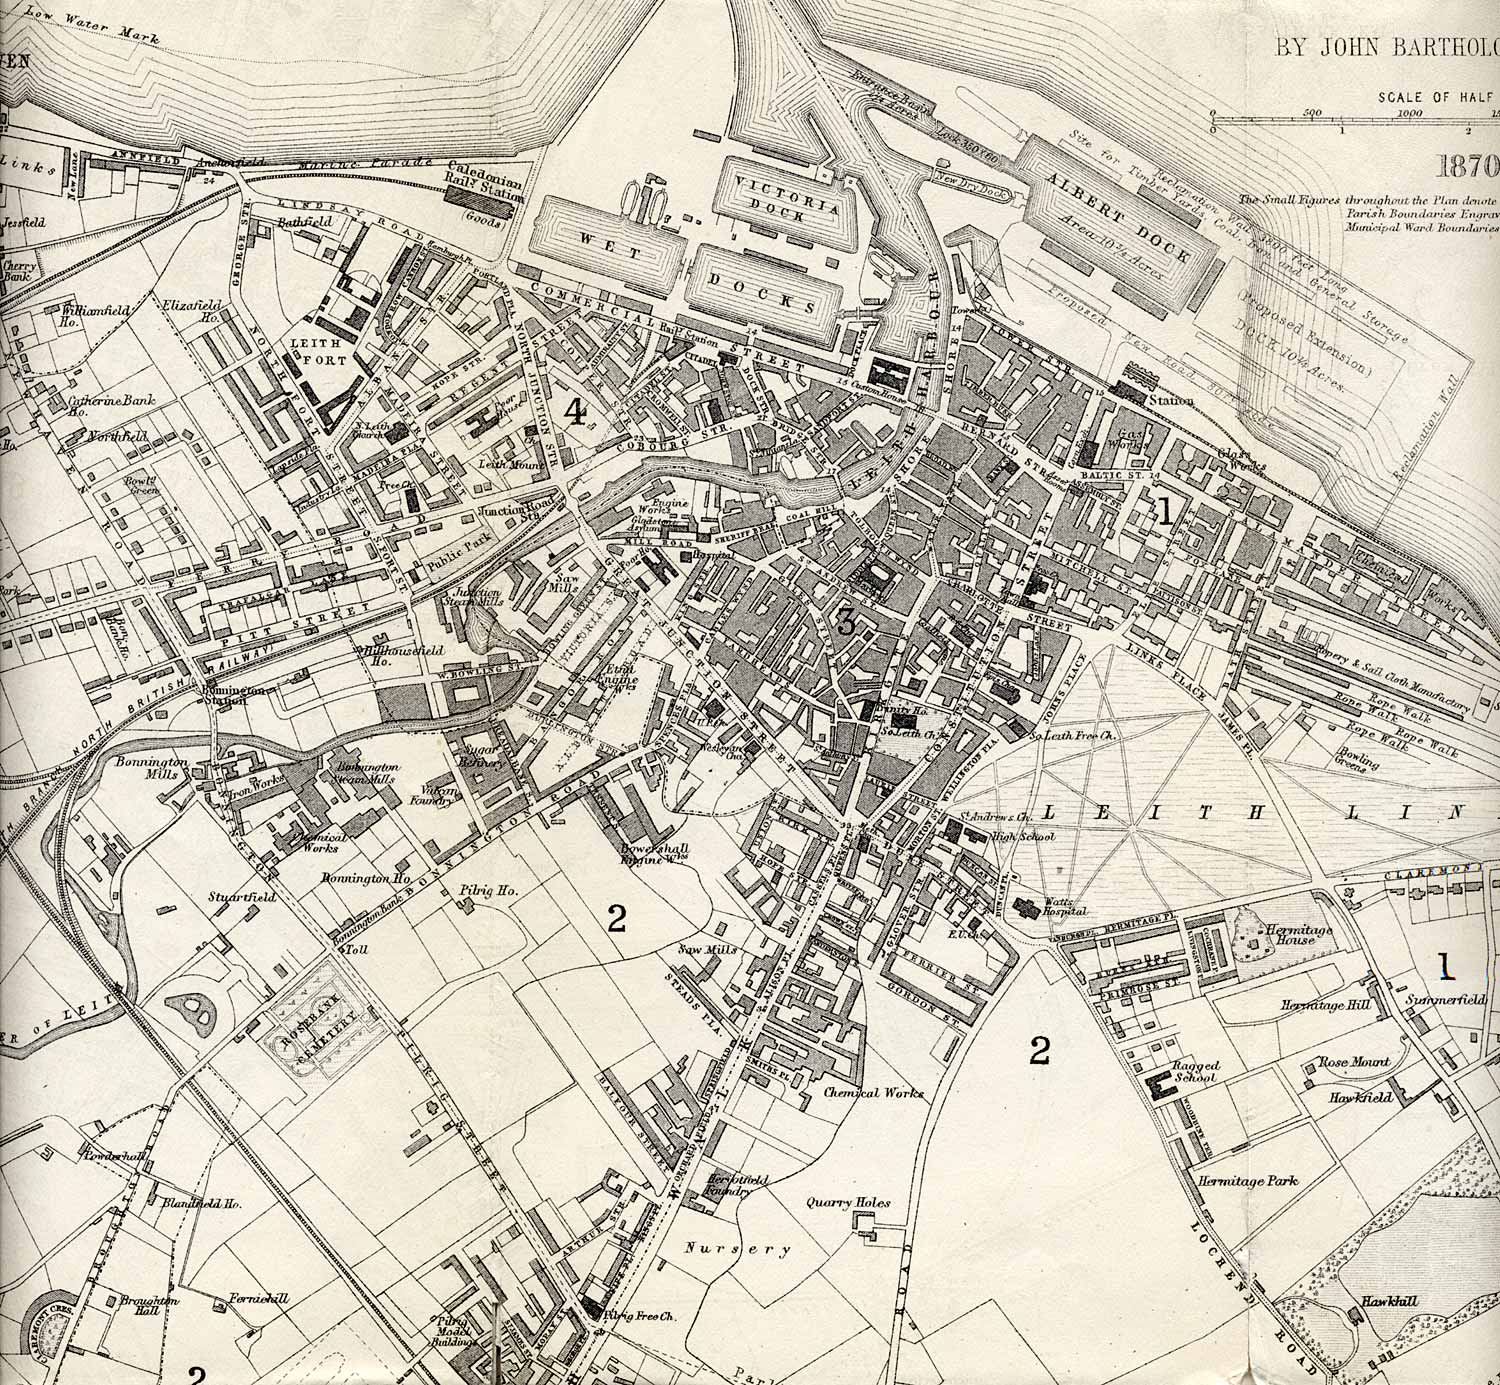 Leith map 1870 enlarged